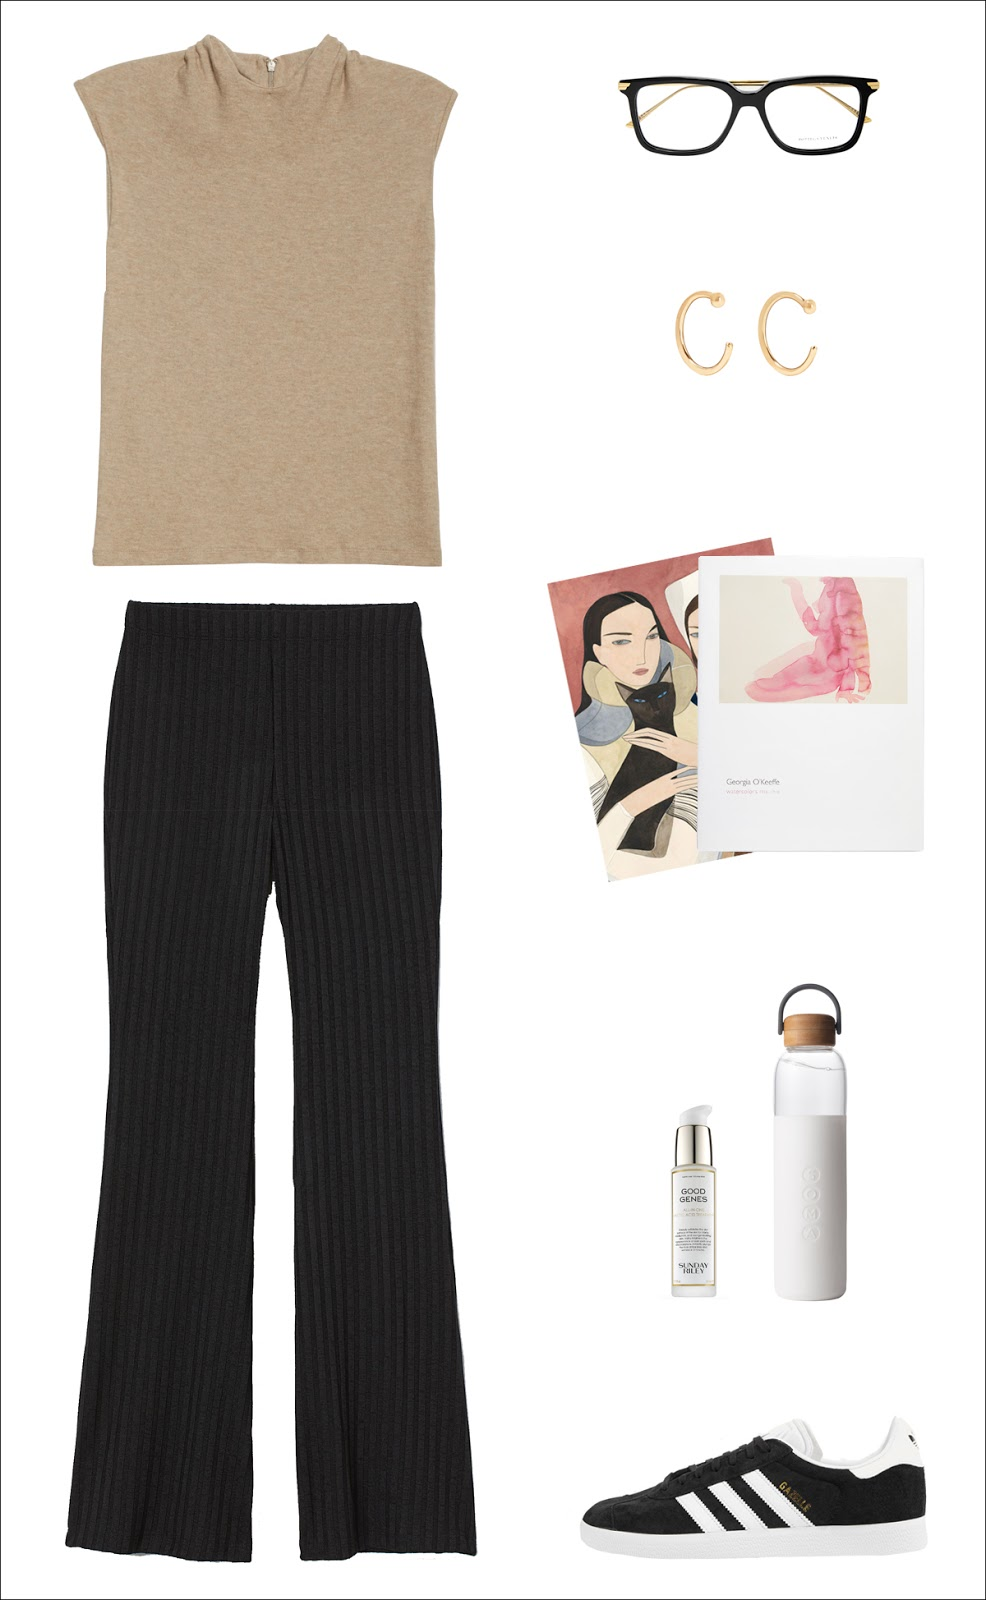 A Comfy-Cool Outfit to Get You Through Covid-19 Self-Quarantine — tan tank top, black eyeglassses, black ribbed pants, and Adidas sneakers